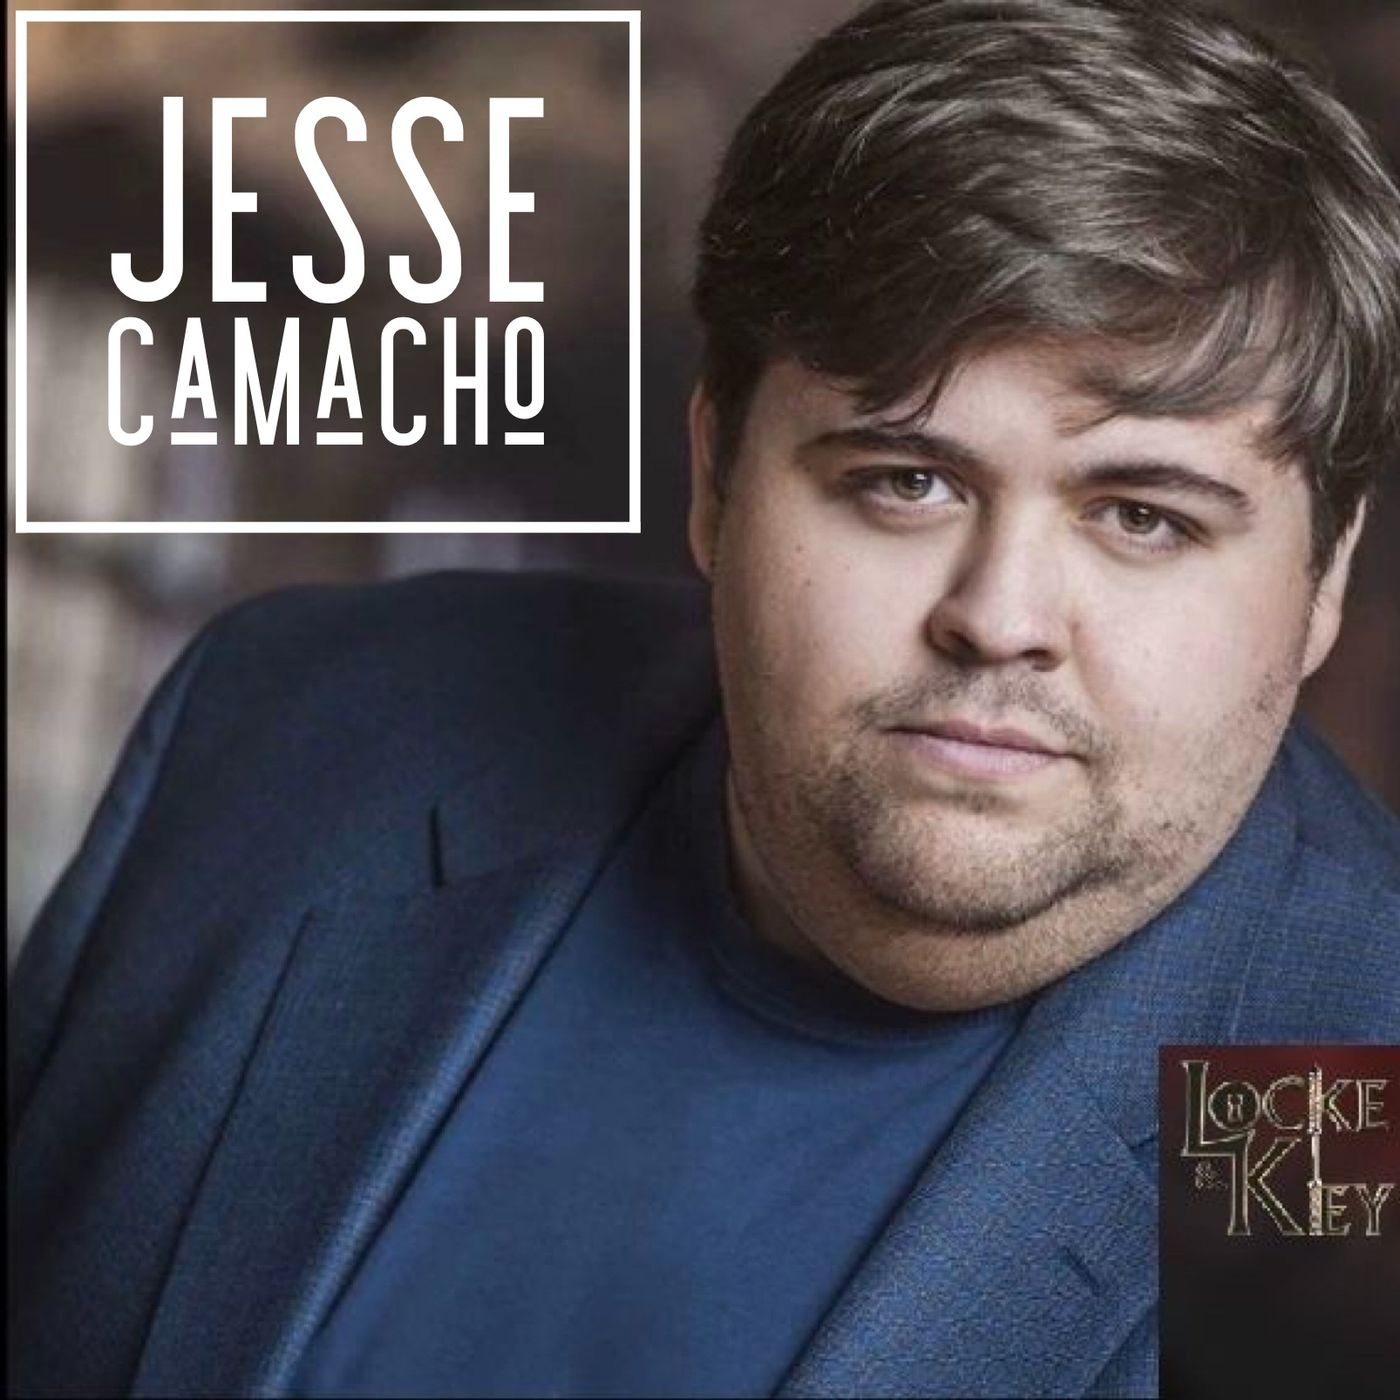 96. Netflix's Locke and Key Jesse Camacho